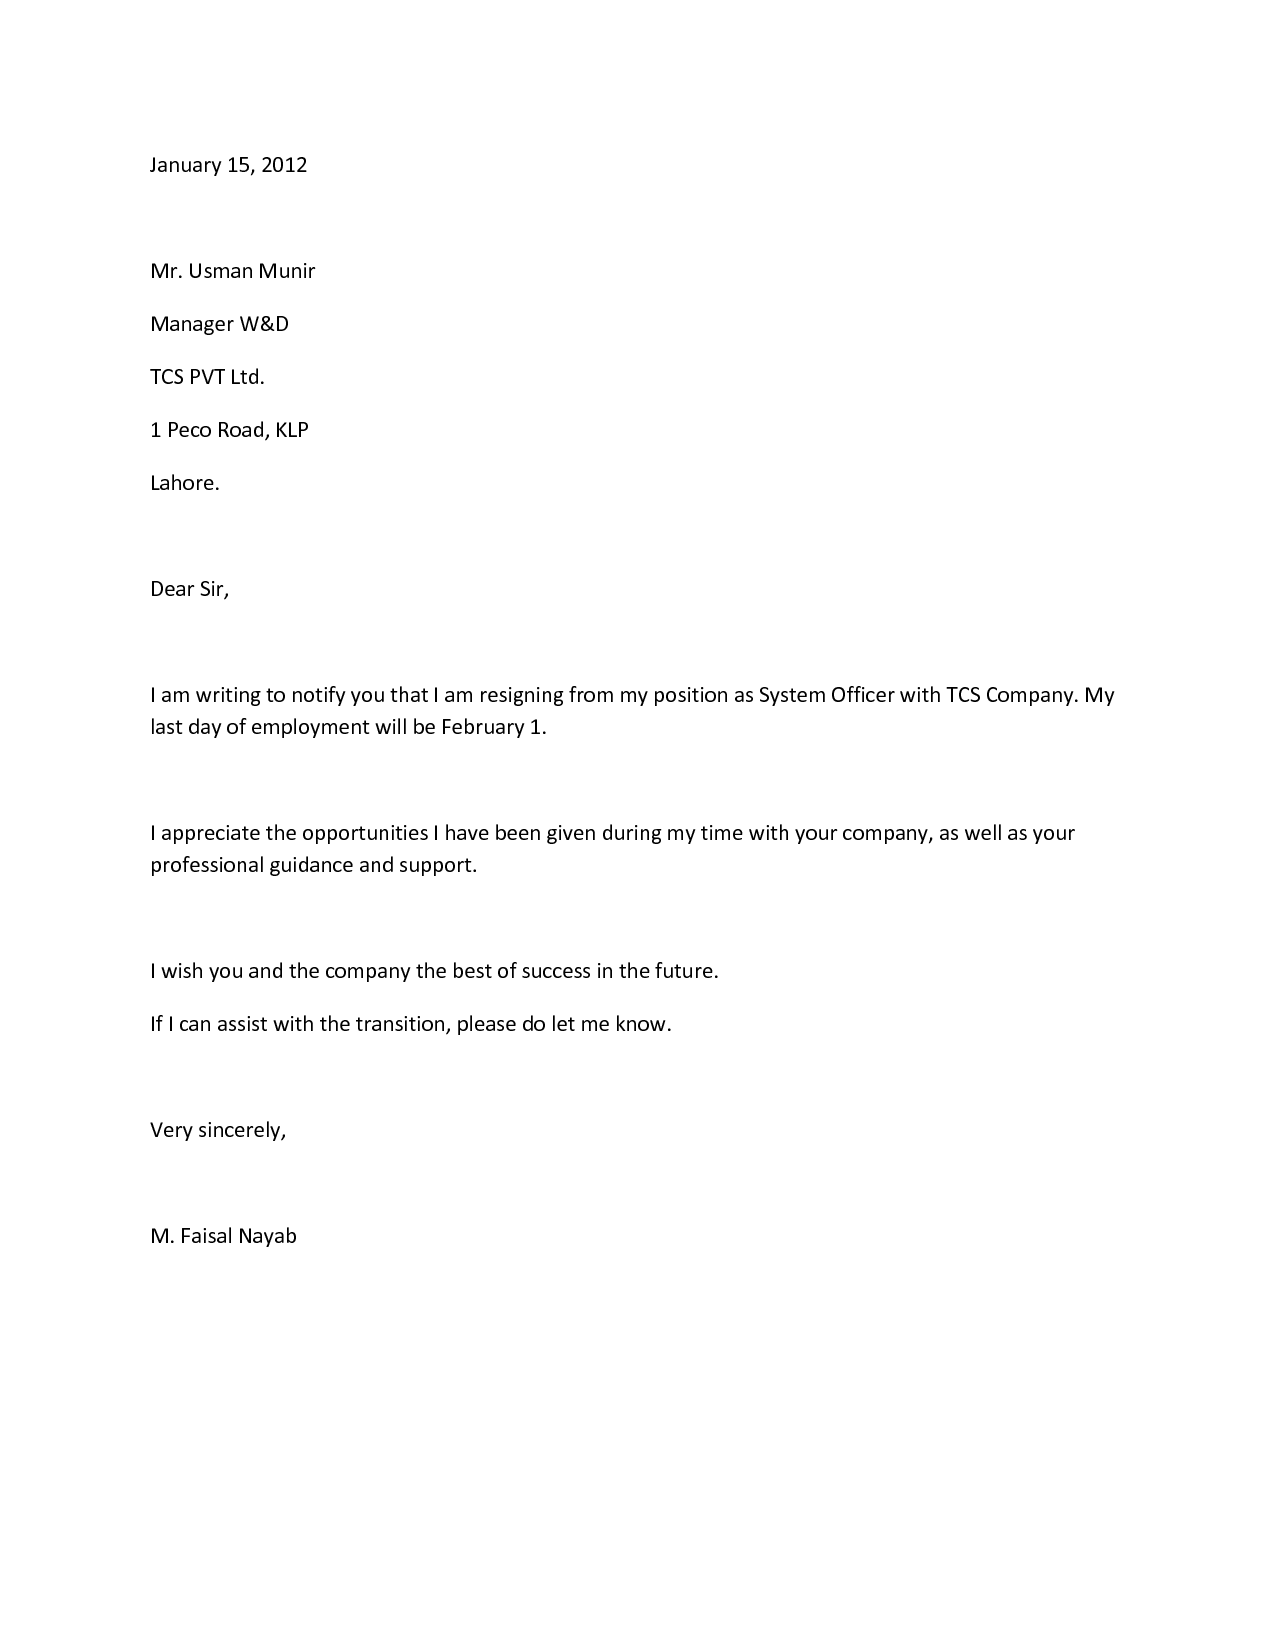 HOW TO WRITE A PROPER RESIGNATION LETTER IMAGES … | English | Resig…